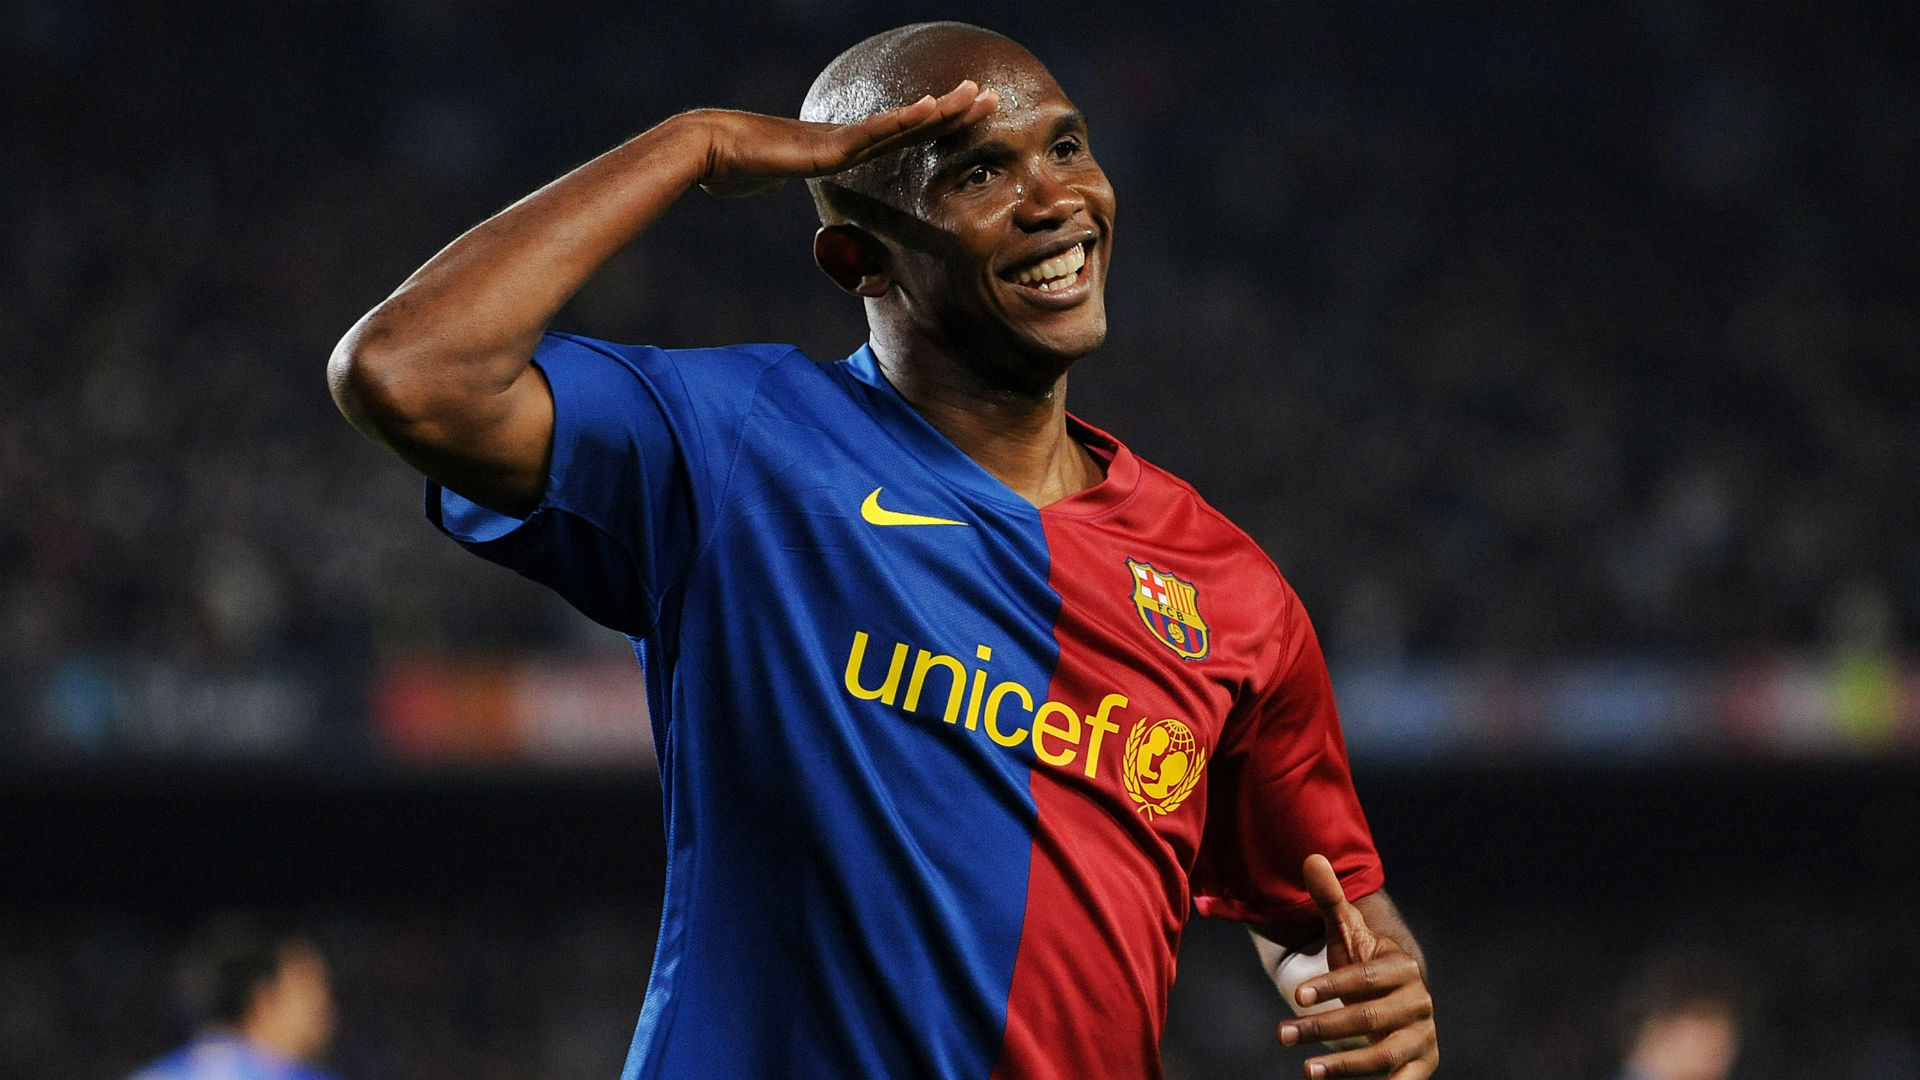 Samuel Eto'o confirms his retirement